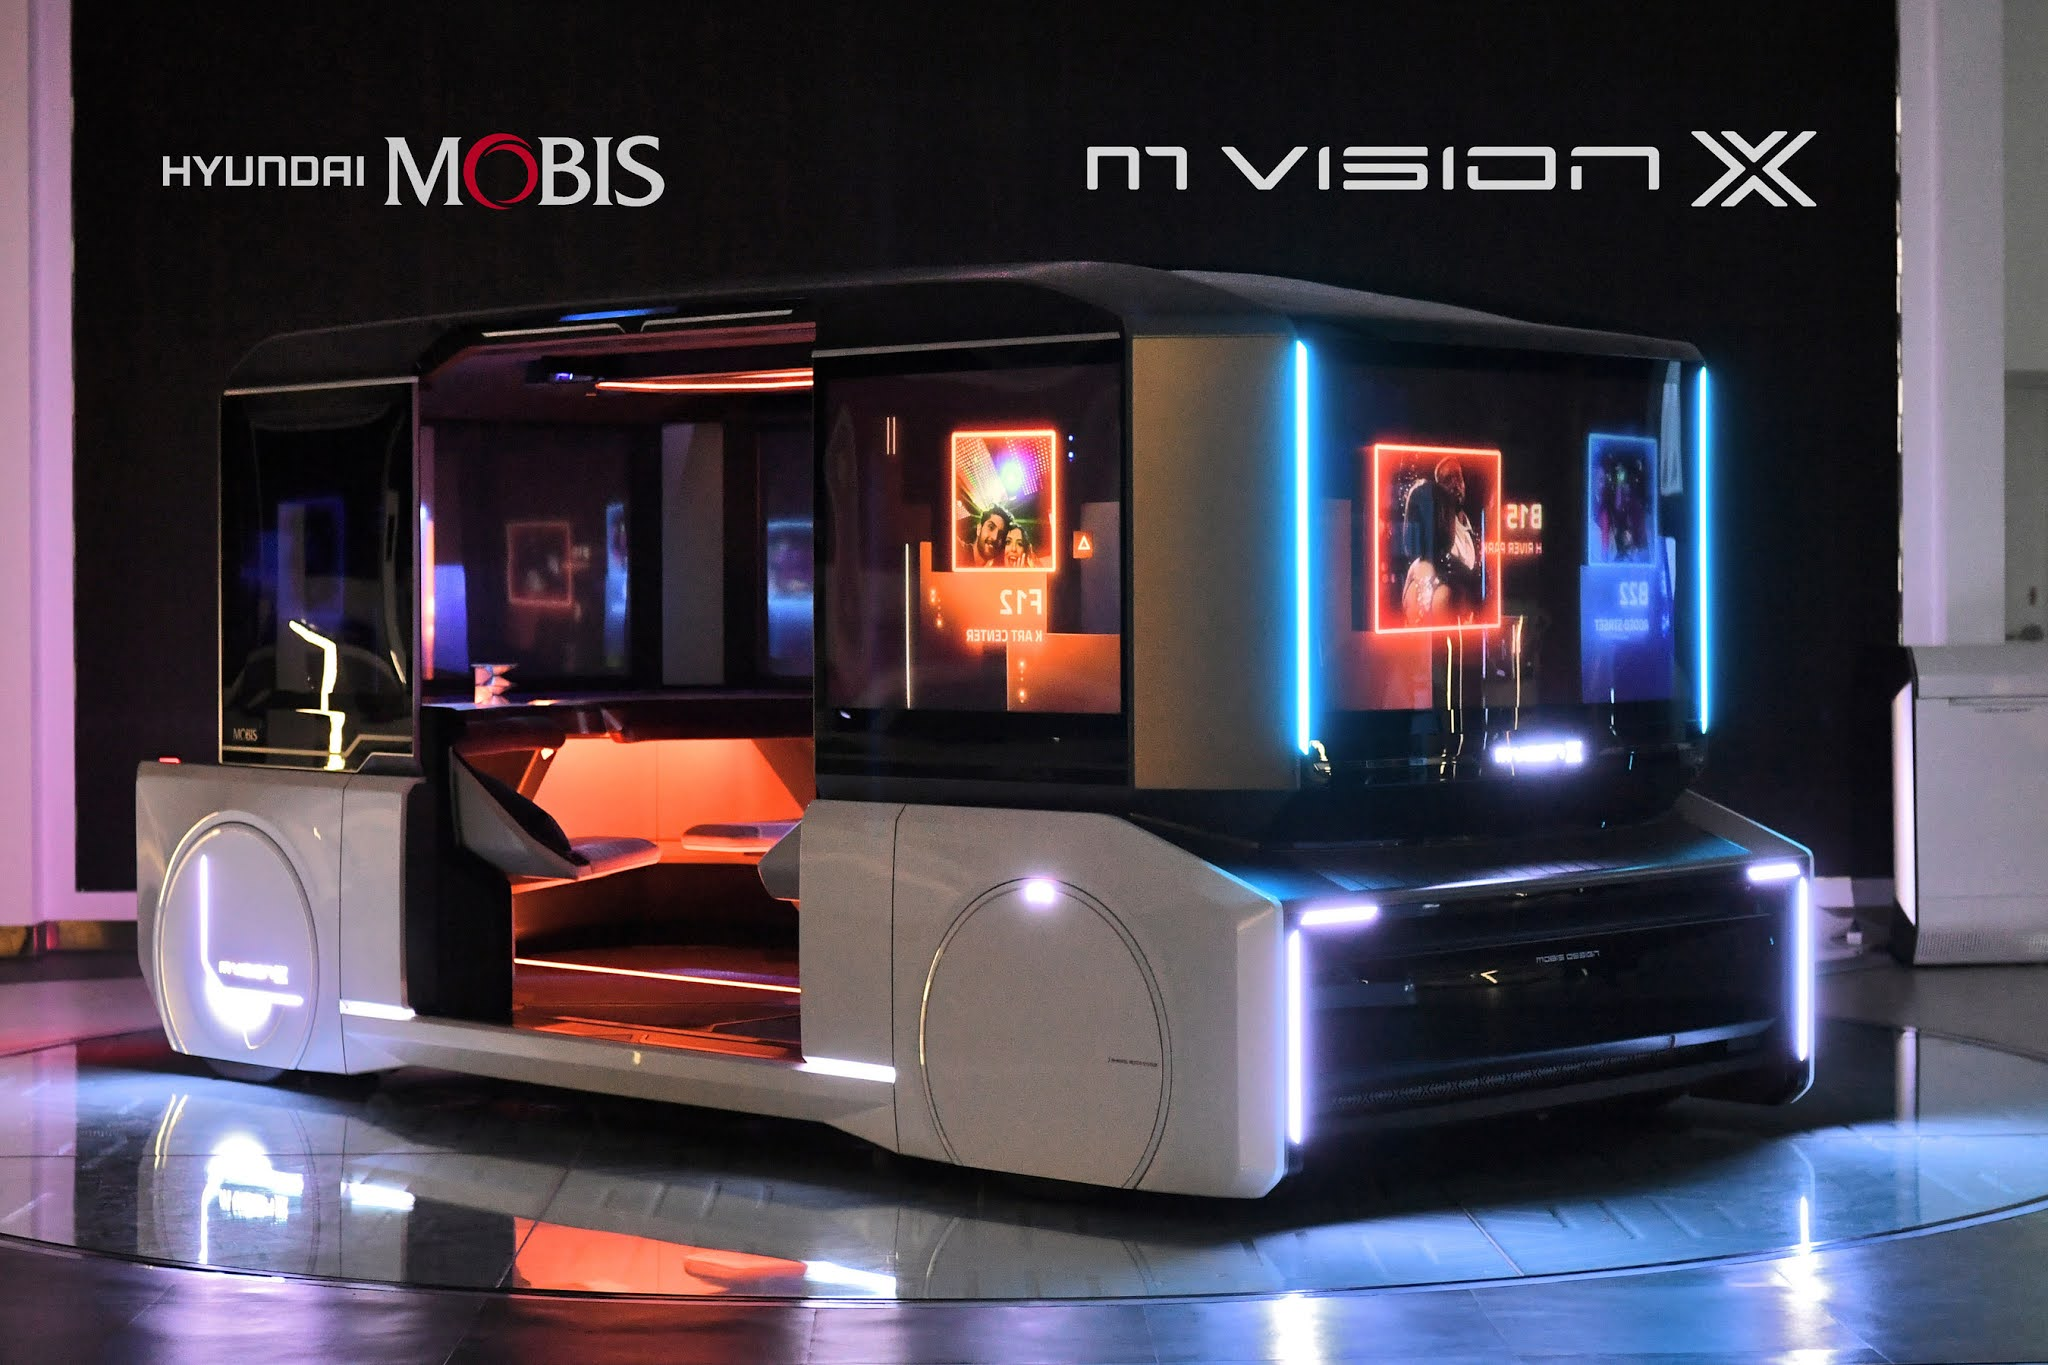 Hyundai Mobis, announced the urban shared future mobility concept, M.Vision X and M.Vision POP!